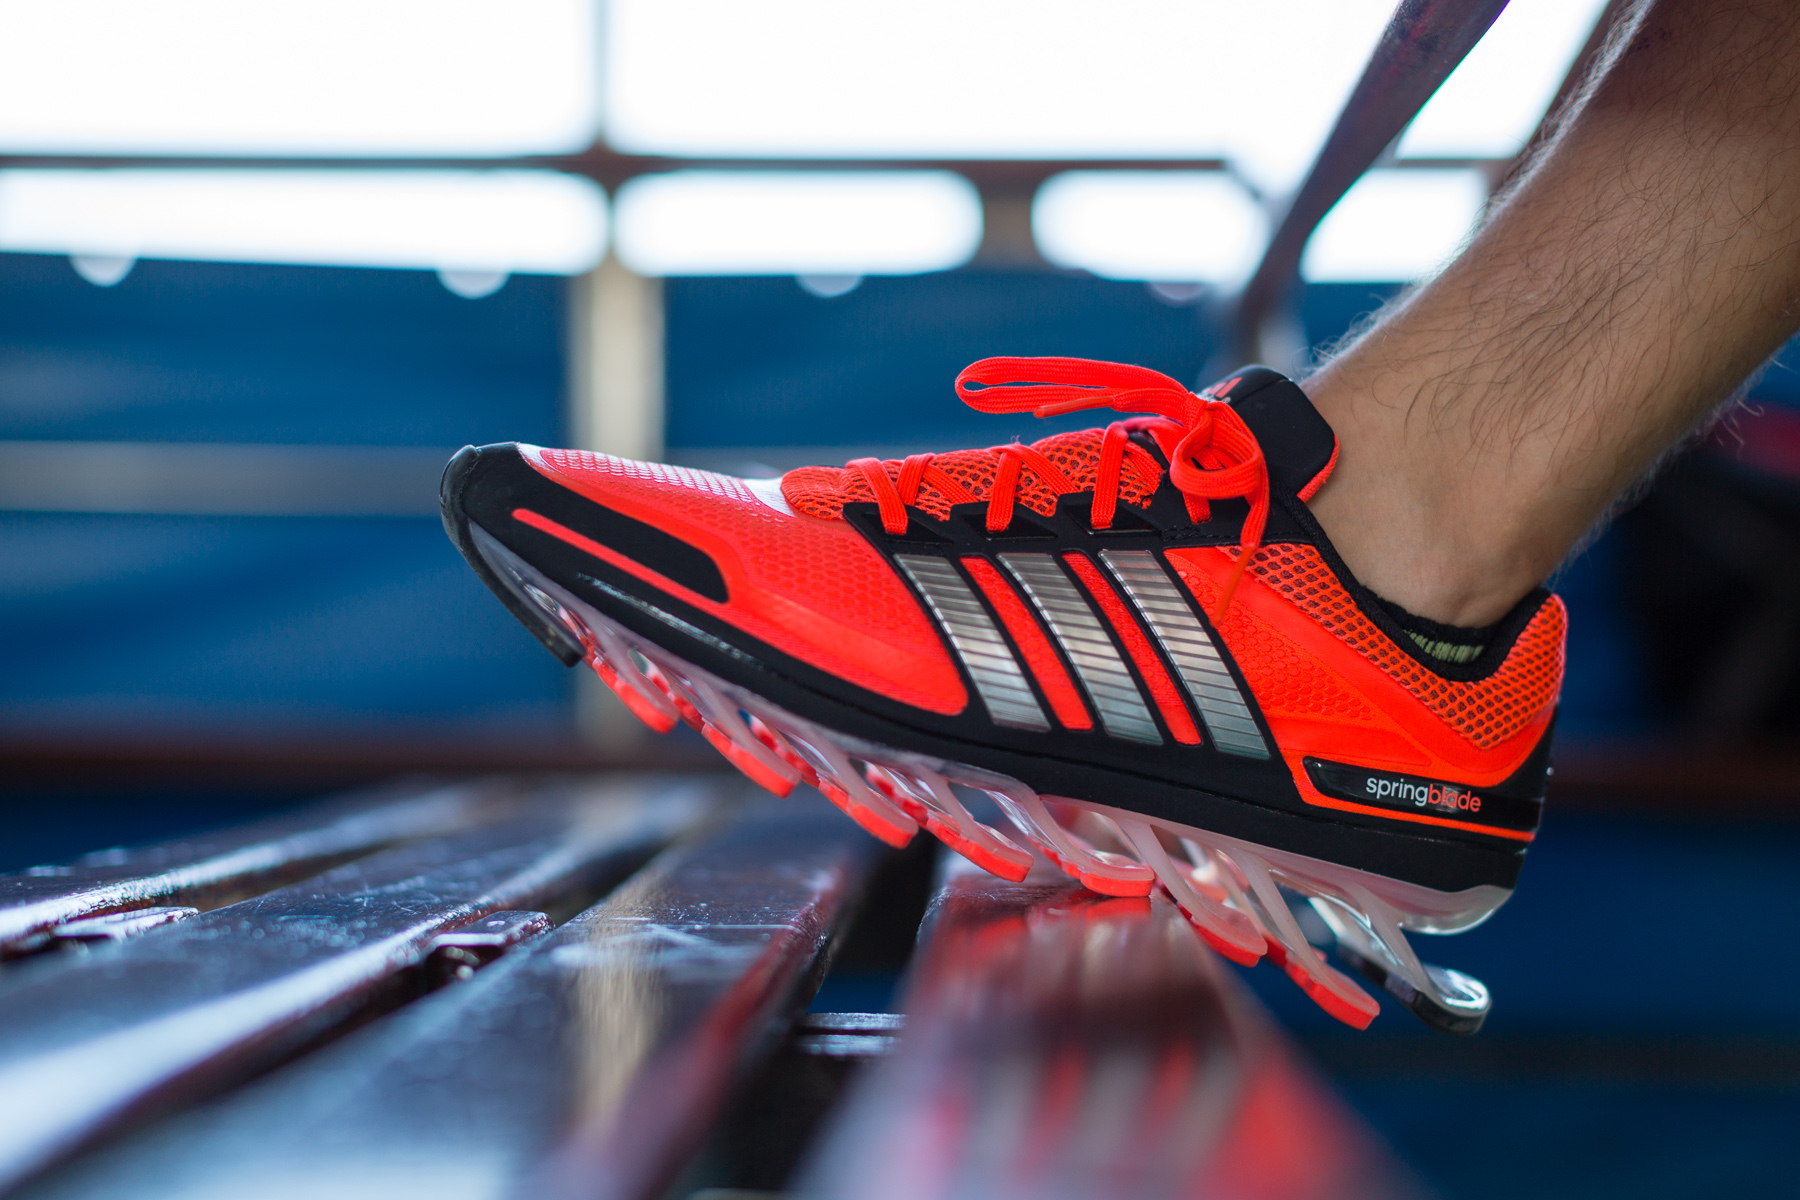 The HYPEBEAST Review: adidas Springblade